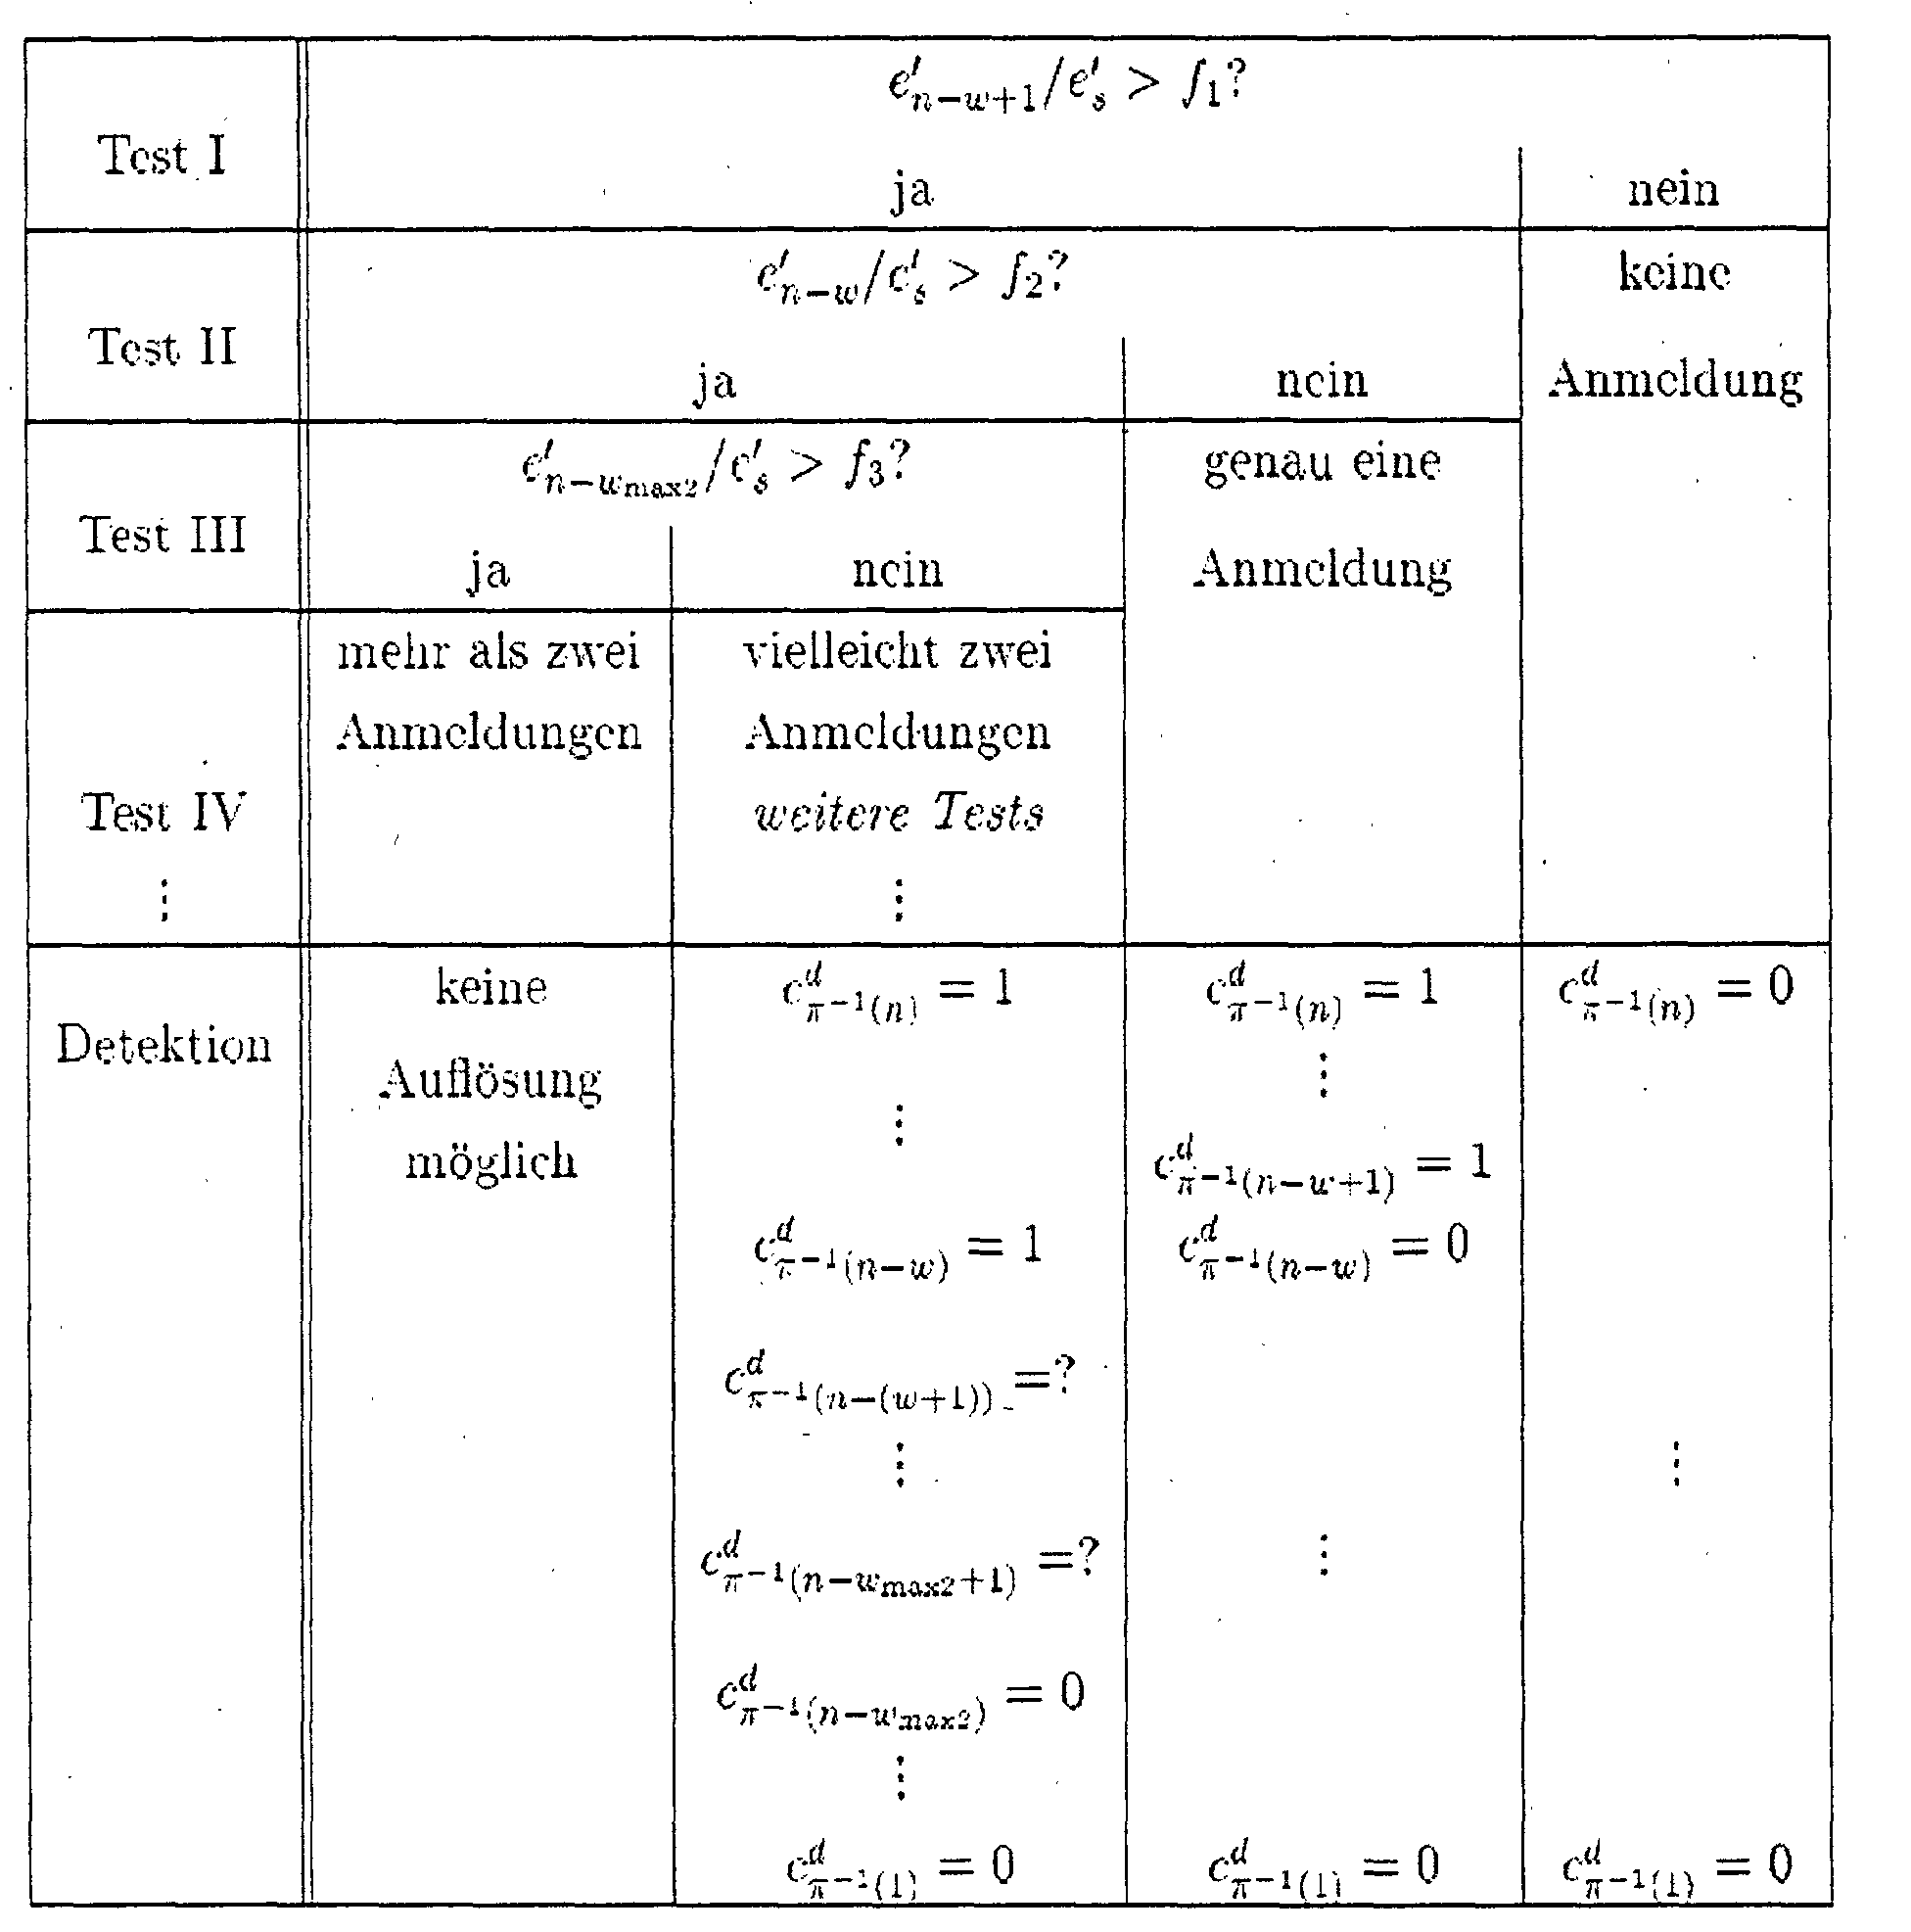 EP1217780A2 - Method and Apparatus for collision detection